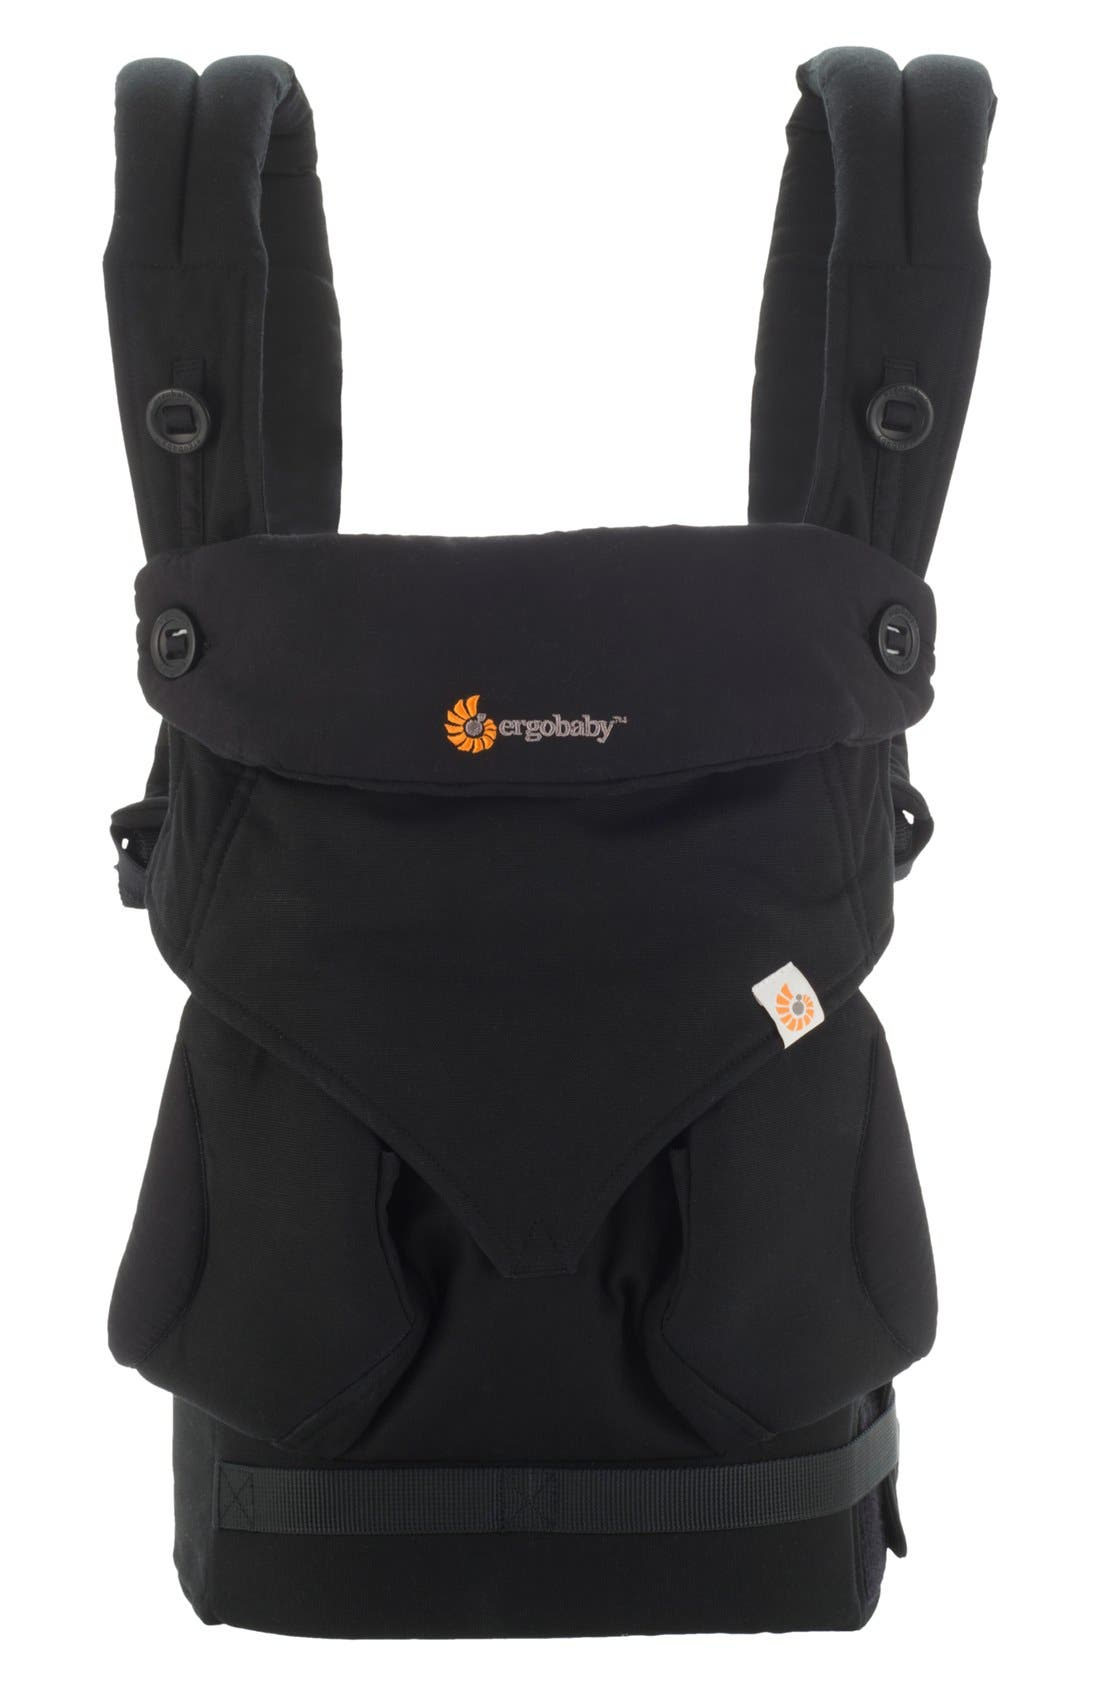 '360' Baby Carrier,                             Main thumbnail 1, color,                             Black